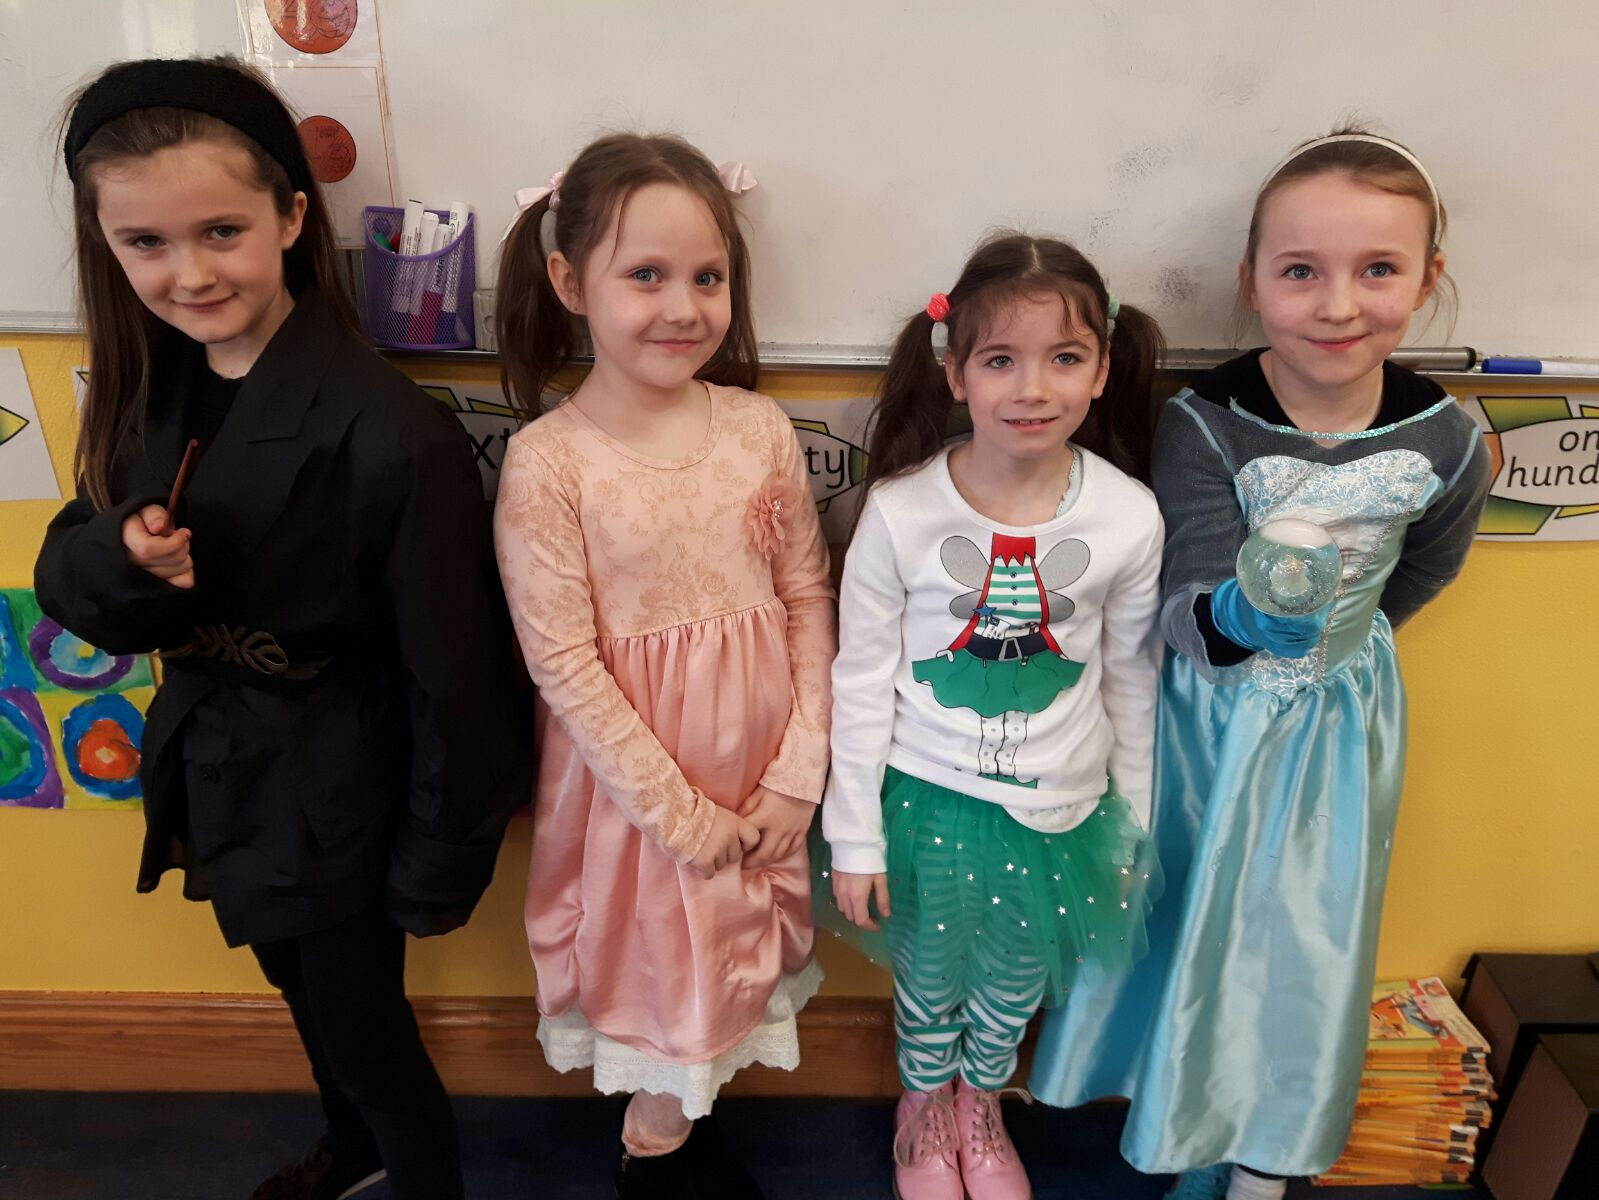 Book character dress up day rathpeacon national school photos solutioingenieria Images